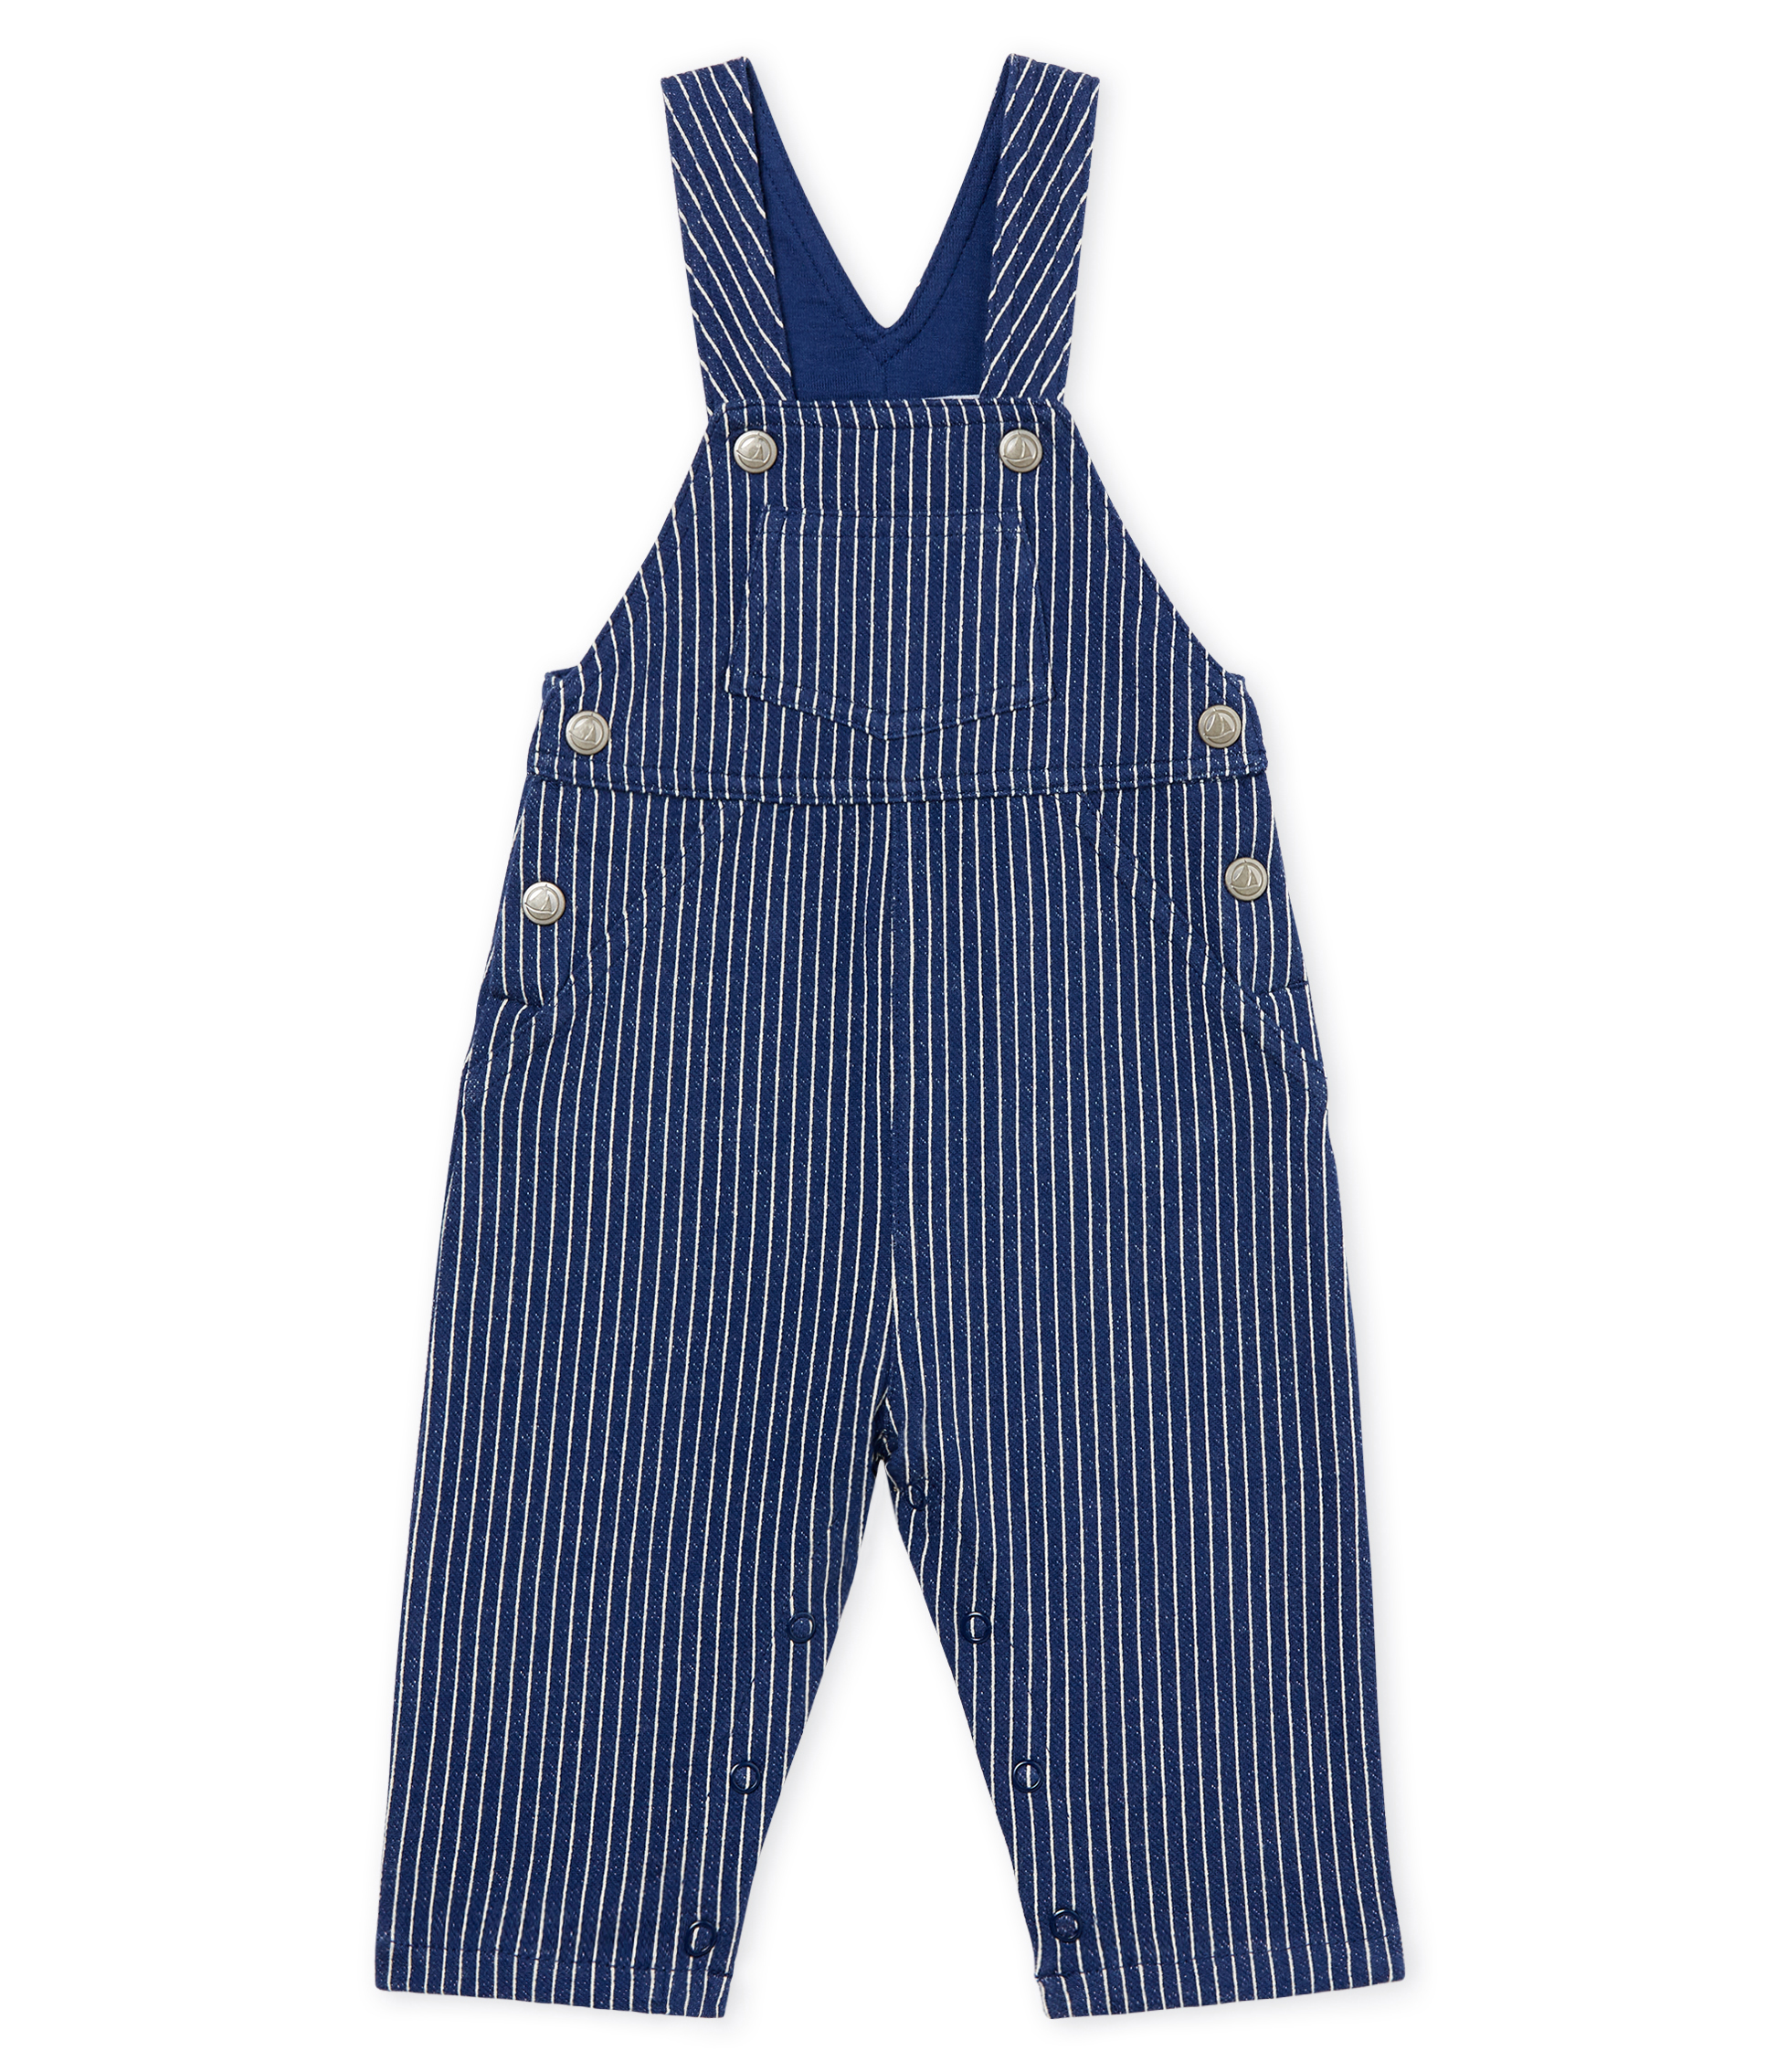 Baby boys' striped jersey long dungarees